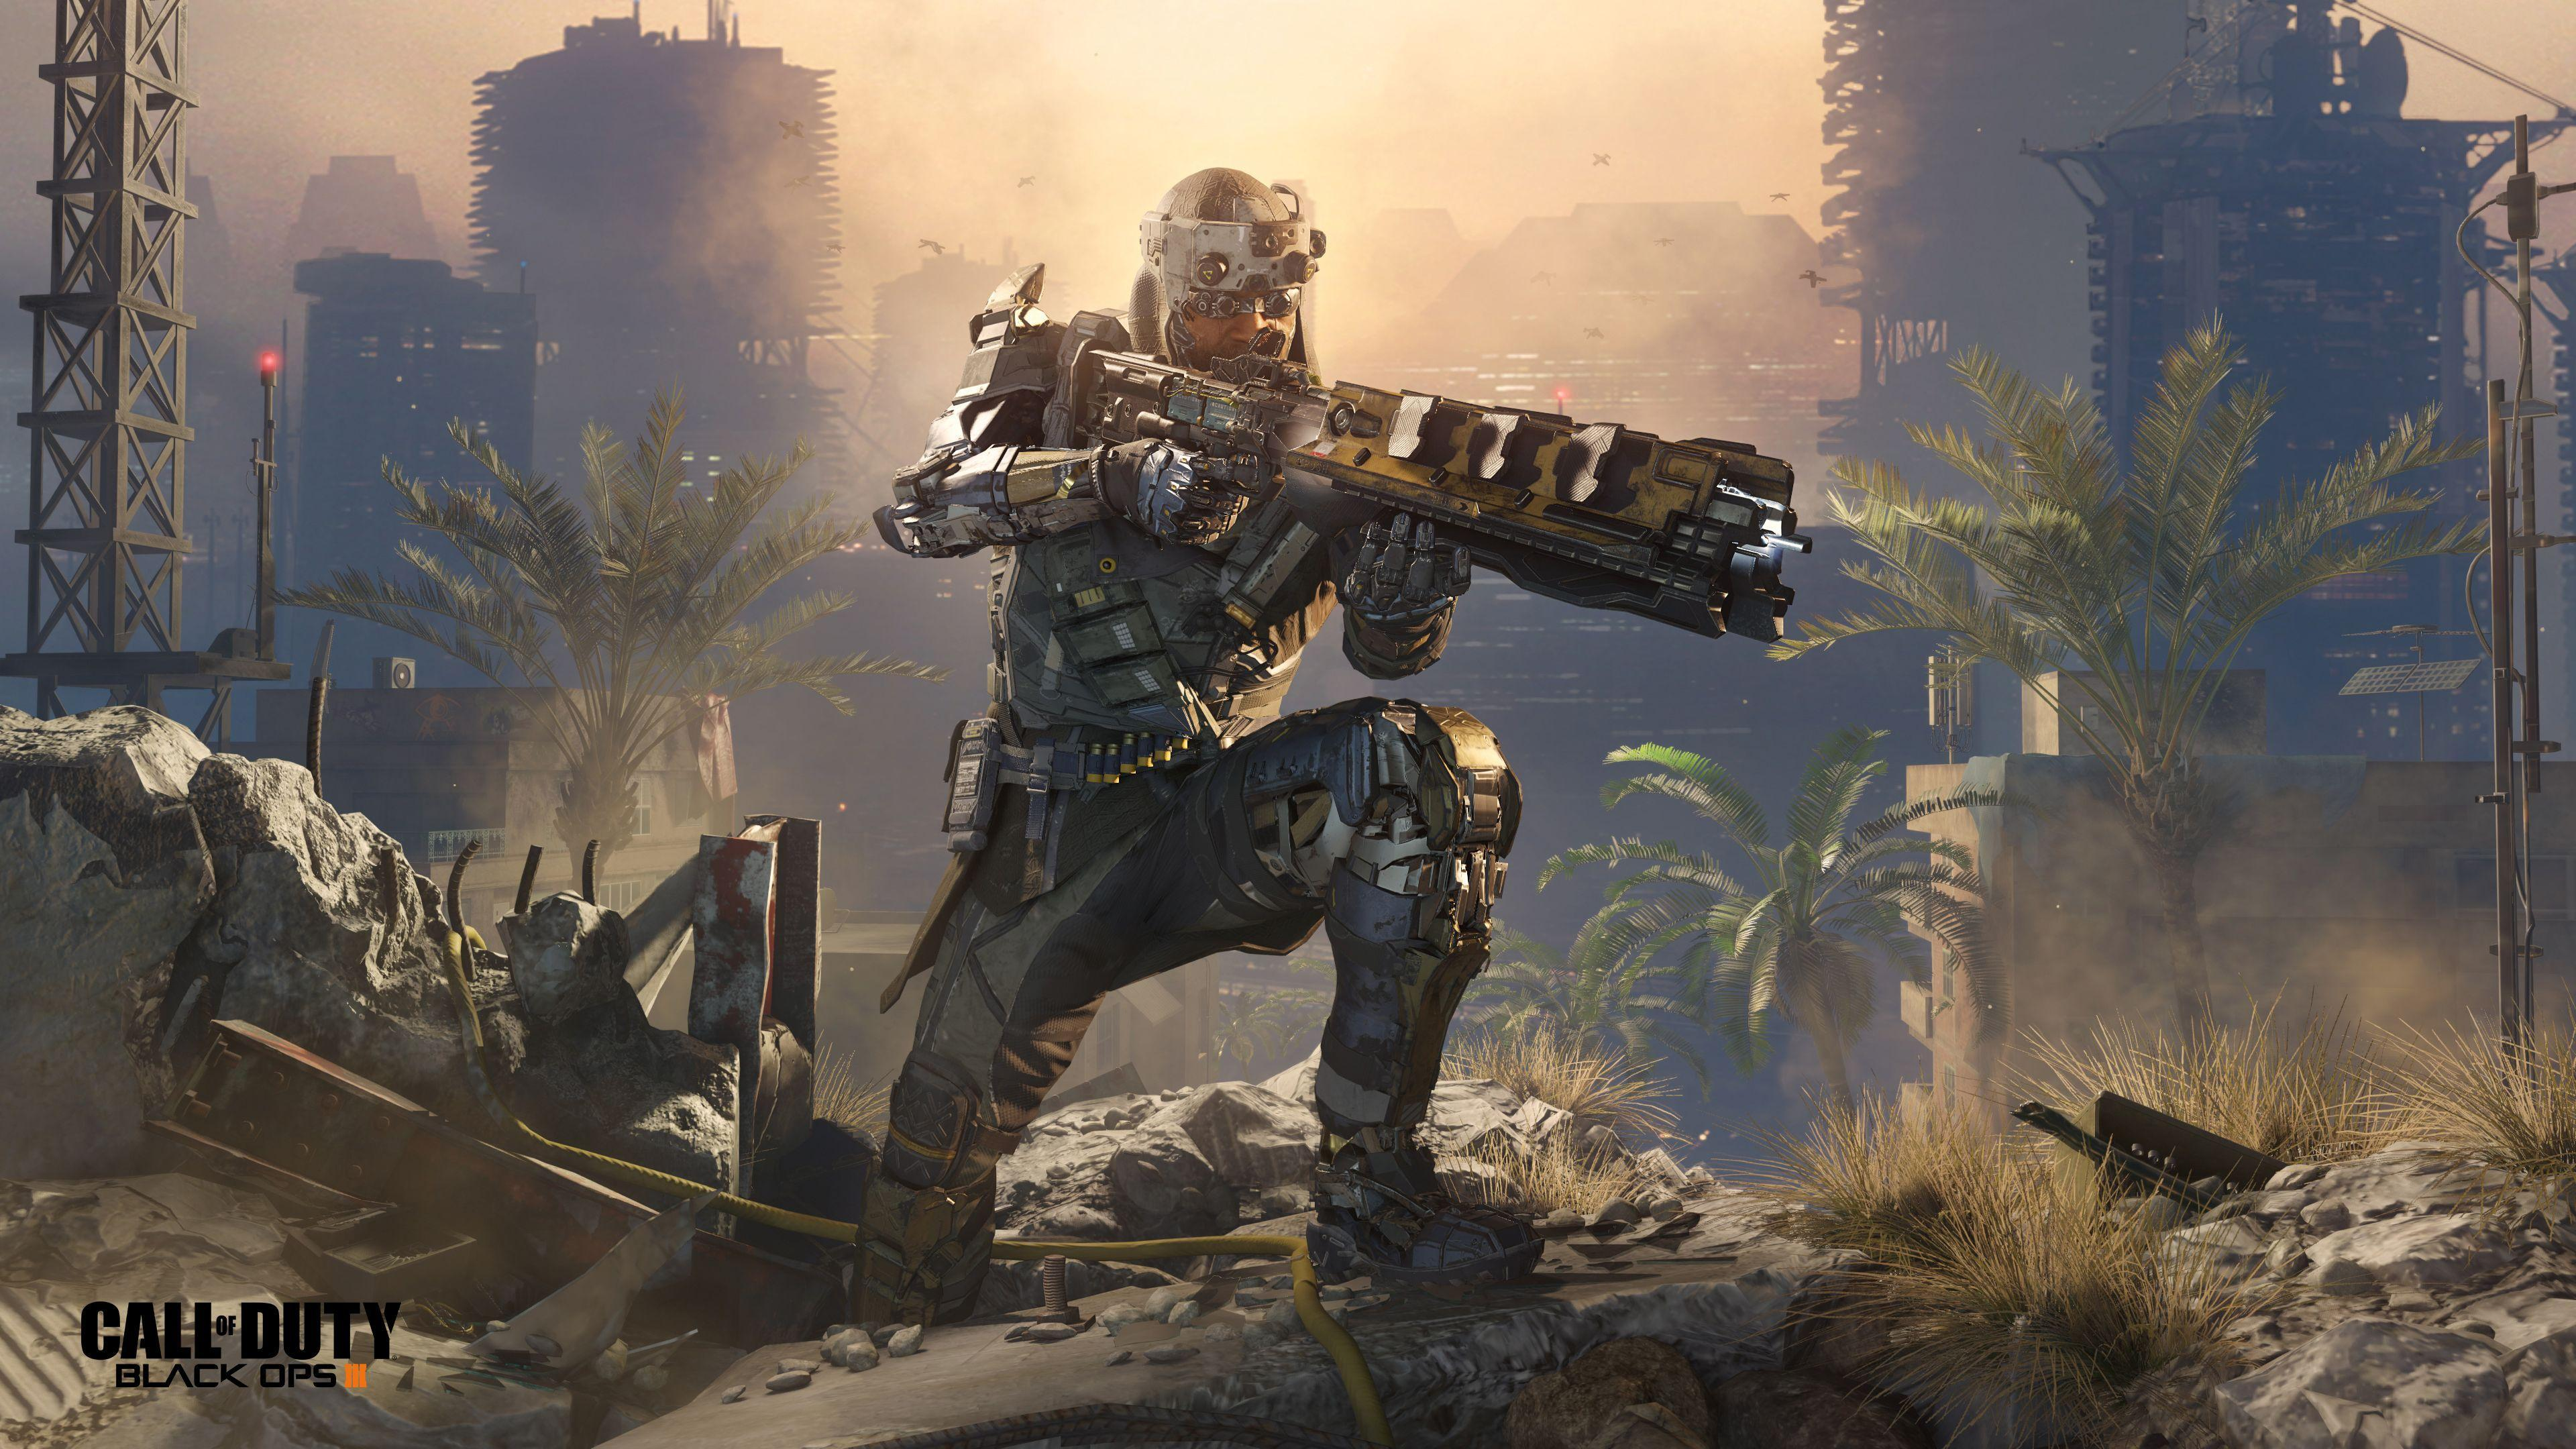 Call Of Duty Black Ops 3 Wallpapers Wide - Mytwiink.com